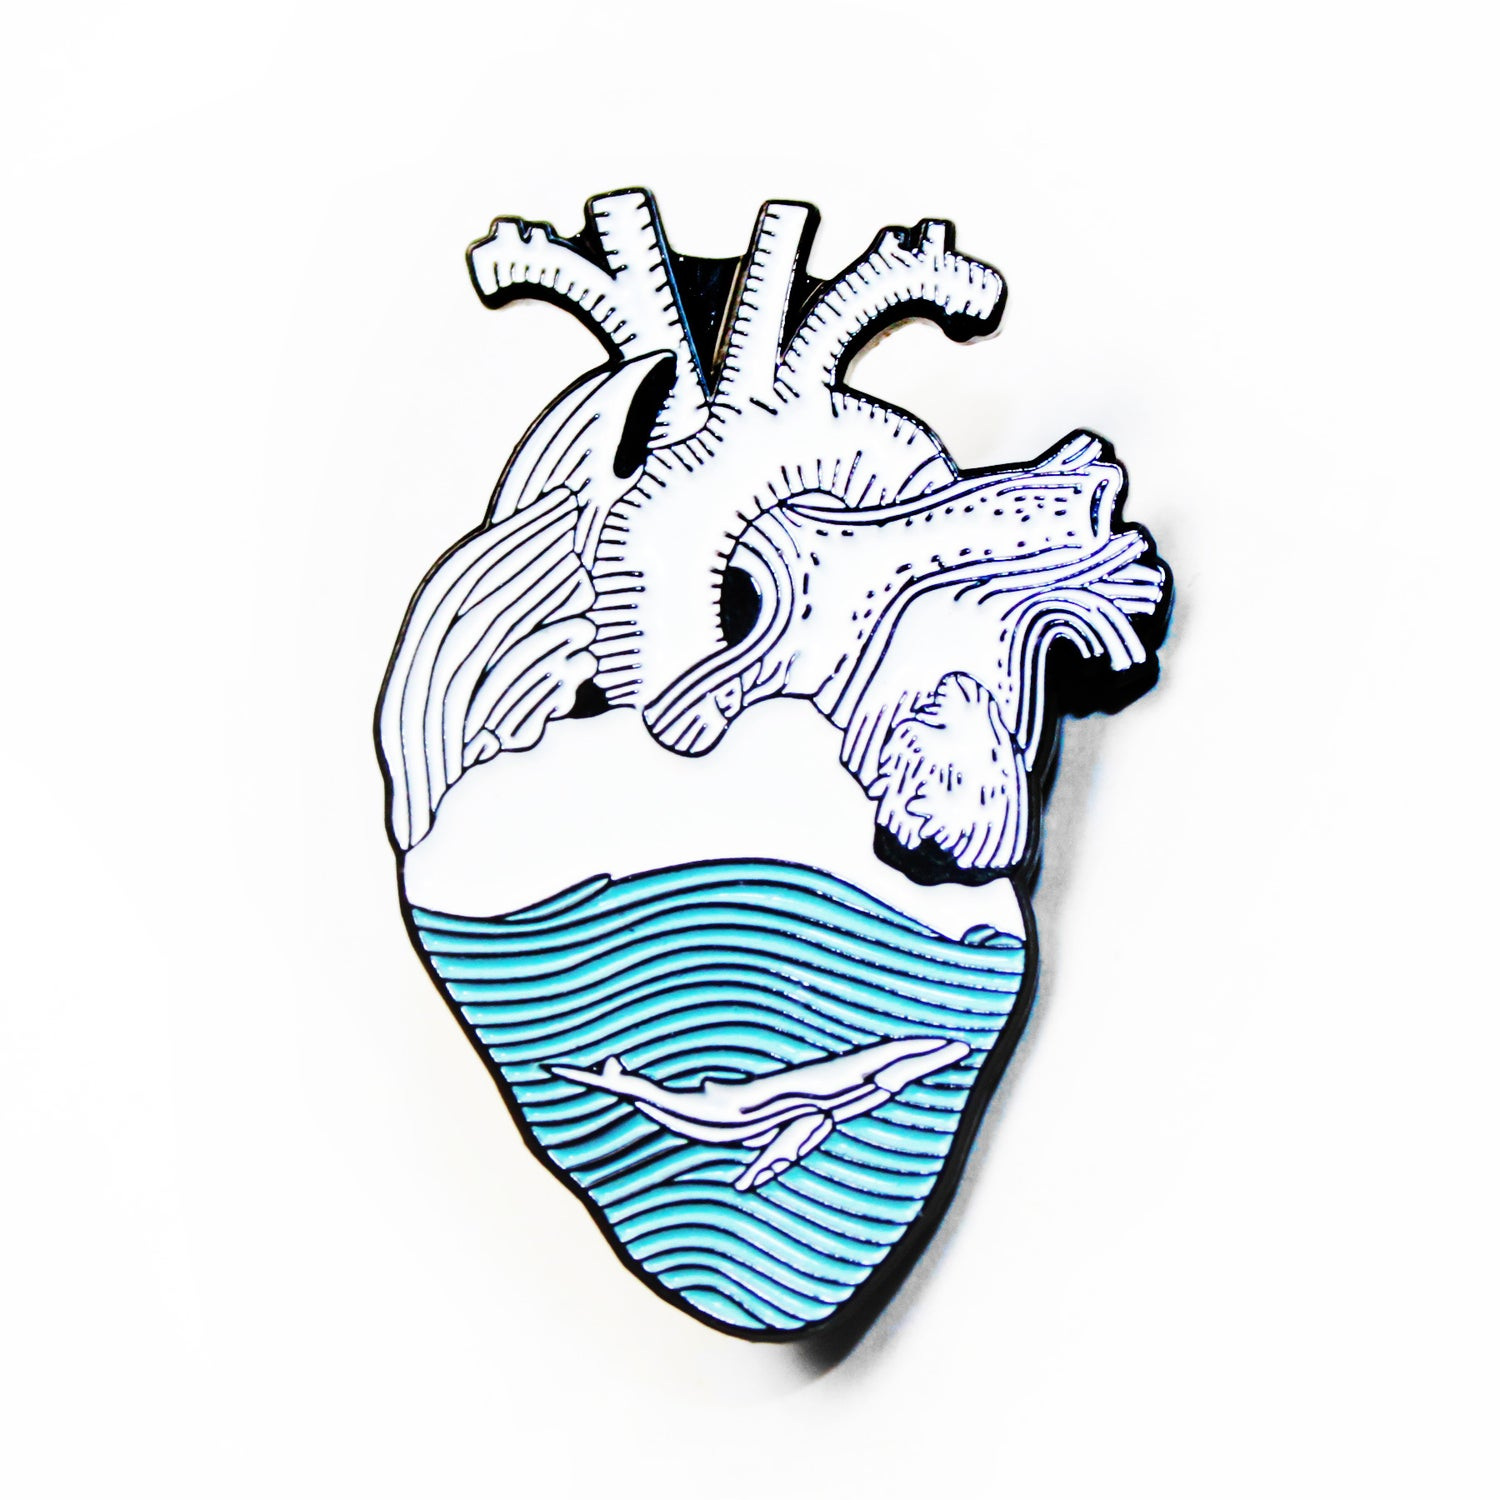 Image of whale heart pin